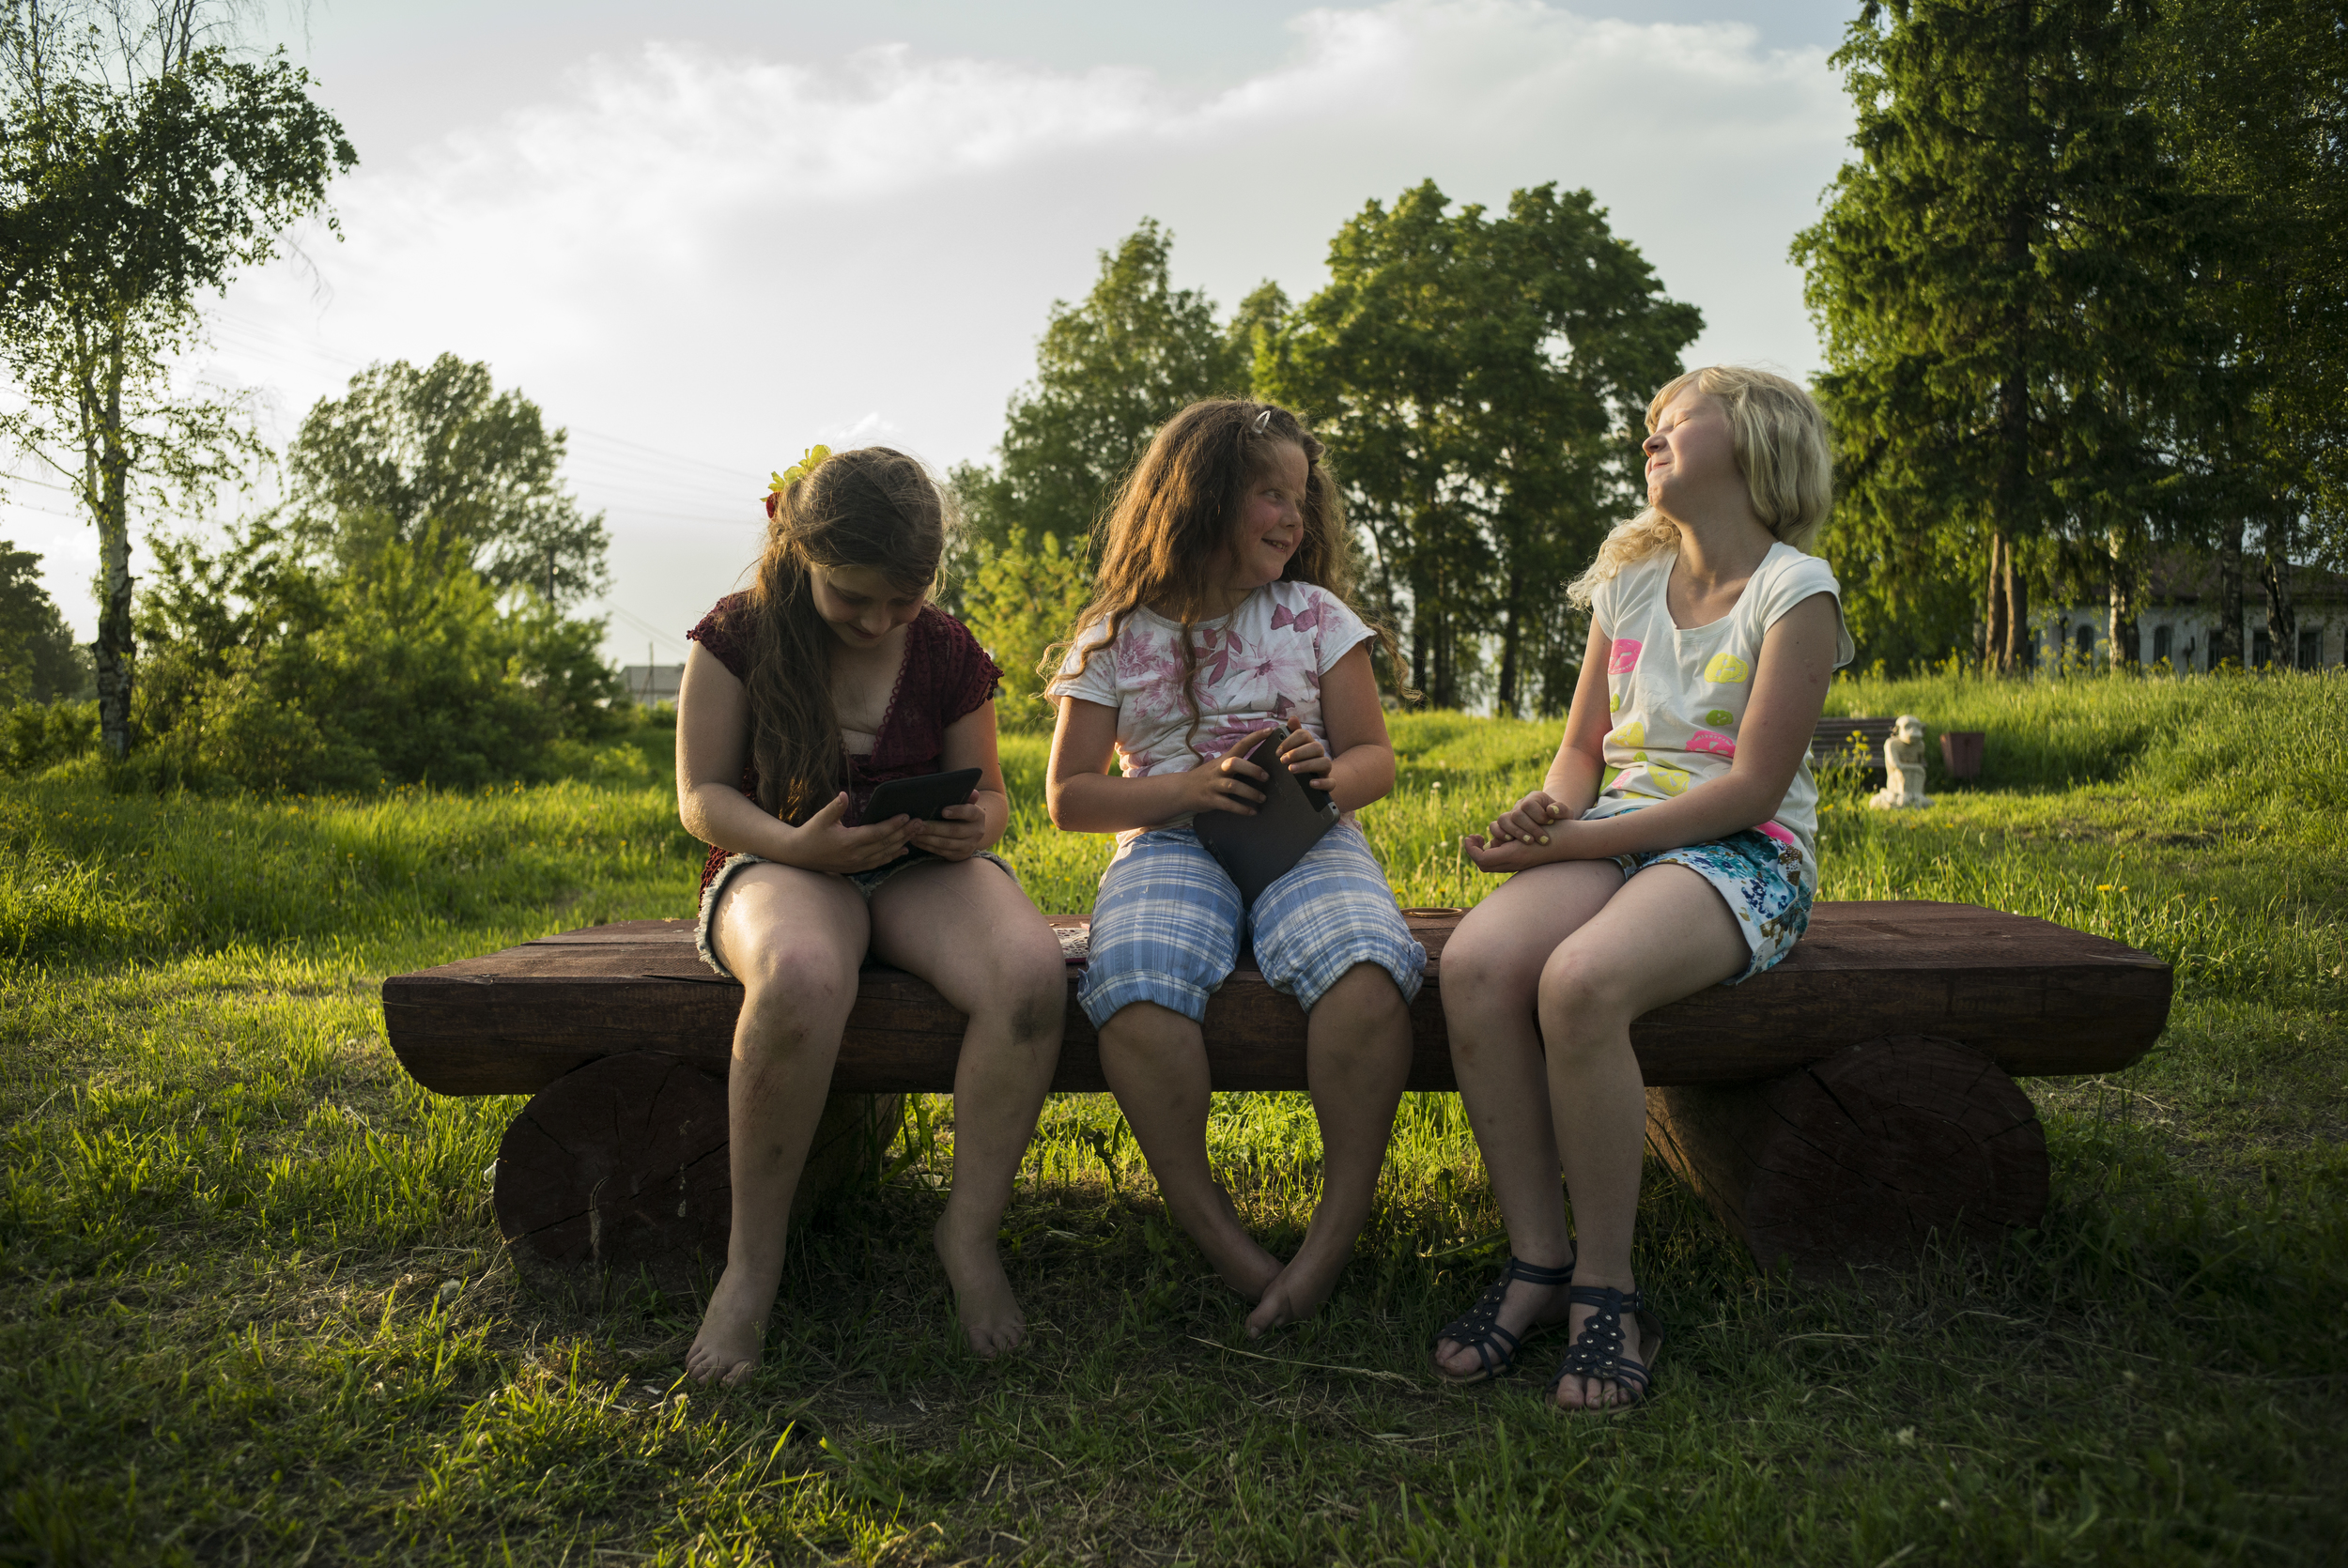 Three girls play on their electronic devices in a park in Saltvilchigotgzk near the Vitchigda River on May 30, 2015. (© Alicia Afshar)